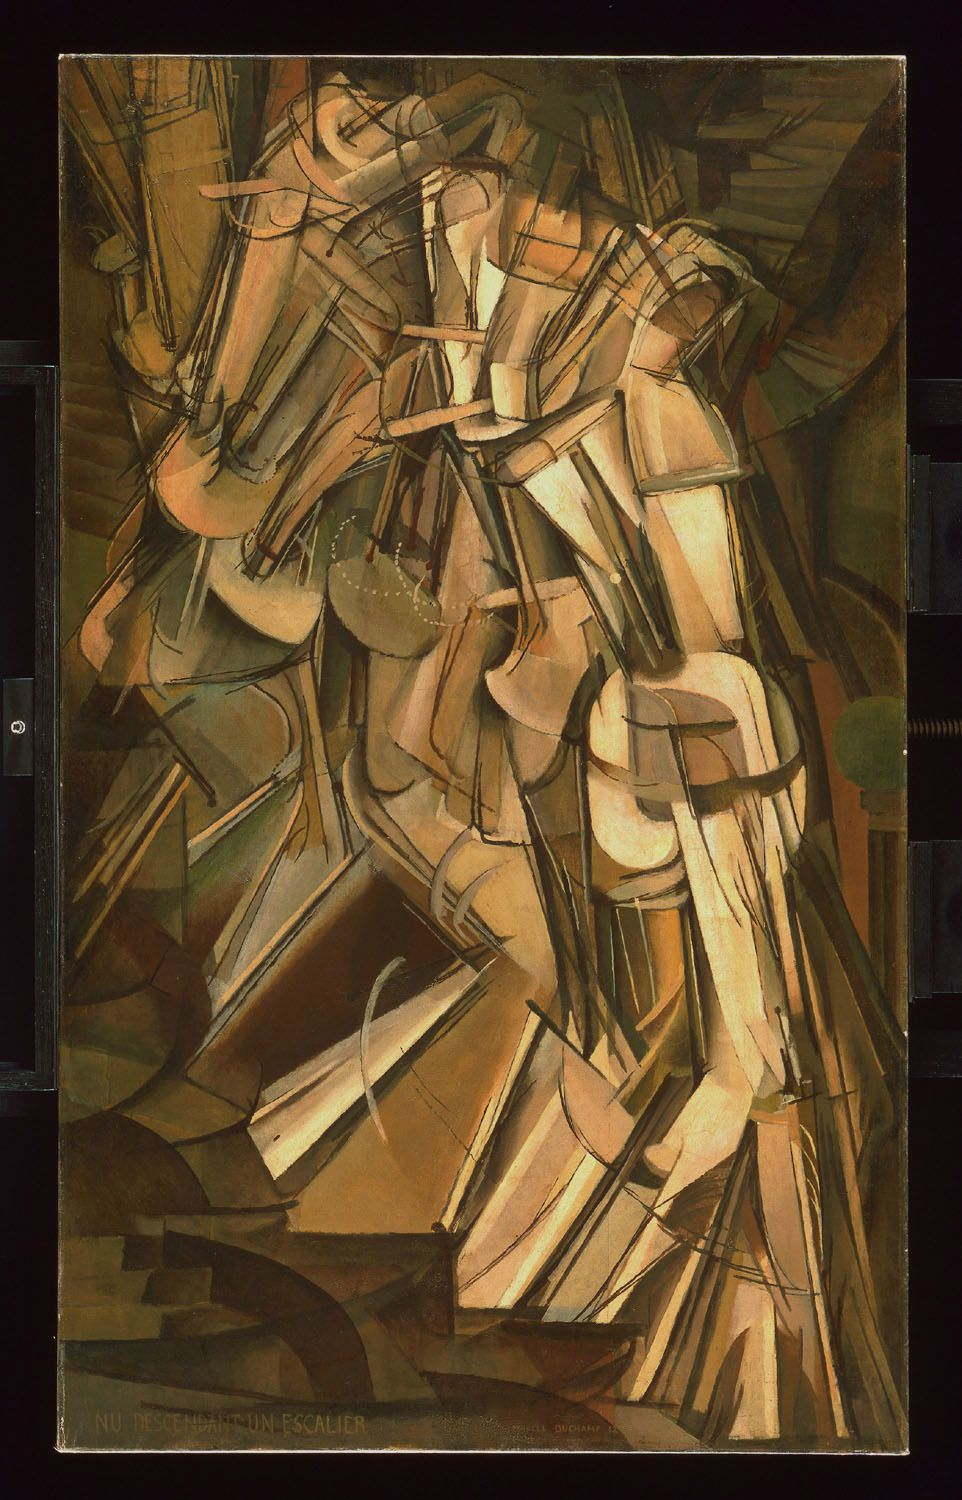 MARCEL DUCHAMP Nu descendant l'escalier n°2,  1912, huile sur toile, 146 x 89 cm Philadelphia Museum of Art, The Louise and Walter Arensberg  Collection, 1950 © 2014 Photo The Philadelphia Museum of Art / ArtResource /  Scala, Florence © succession Marcel Duchamp / ADAGP, Paris 2014